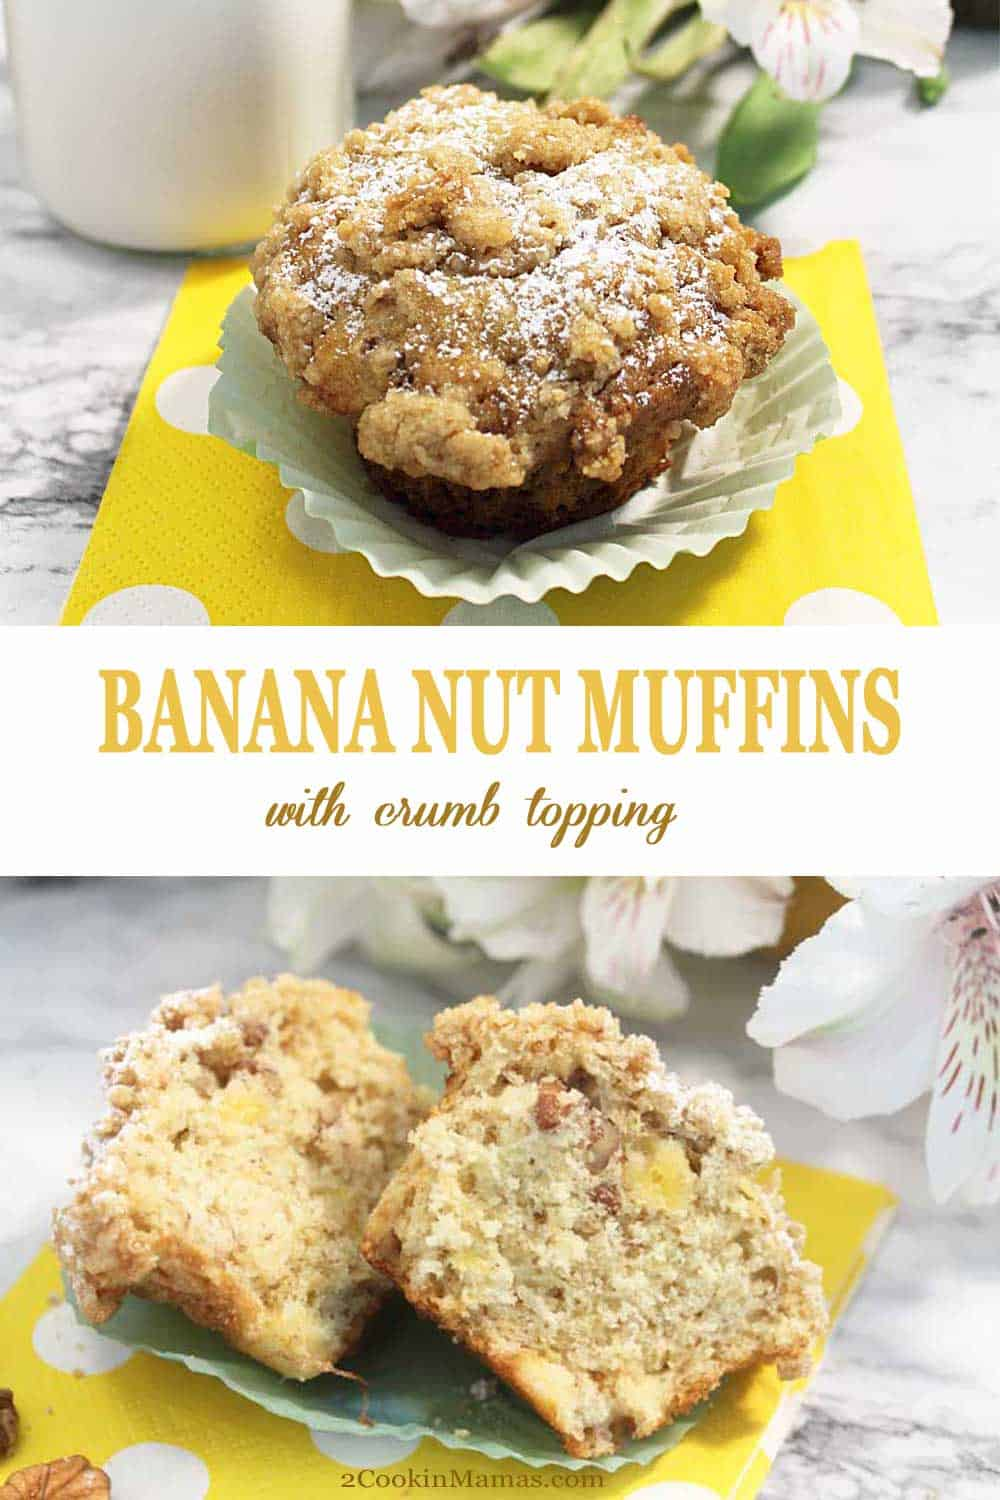 These amazingly moist and delicious banana muffins have tons of sweet banana flavor and a nice crunch from chopped pecans. Easy to make, complete with bakery-style muffins tops, and piled high with a crunchy crumb topping. Great for breakfast or snacks and on the table in just 30 minutes. #muffins #banana #withcrumbtopping #pecans #breakfast #snack #easy #recipe